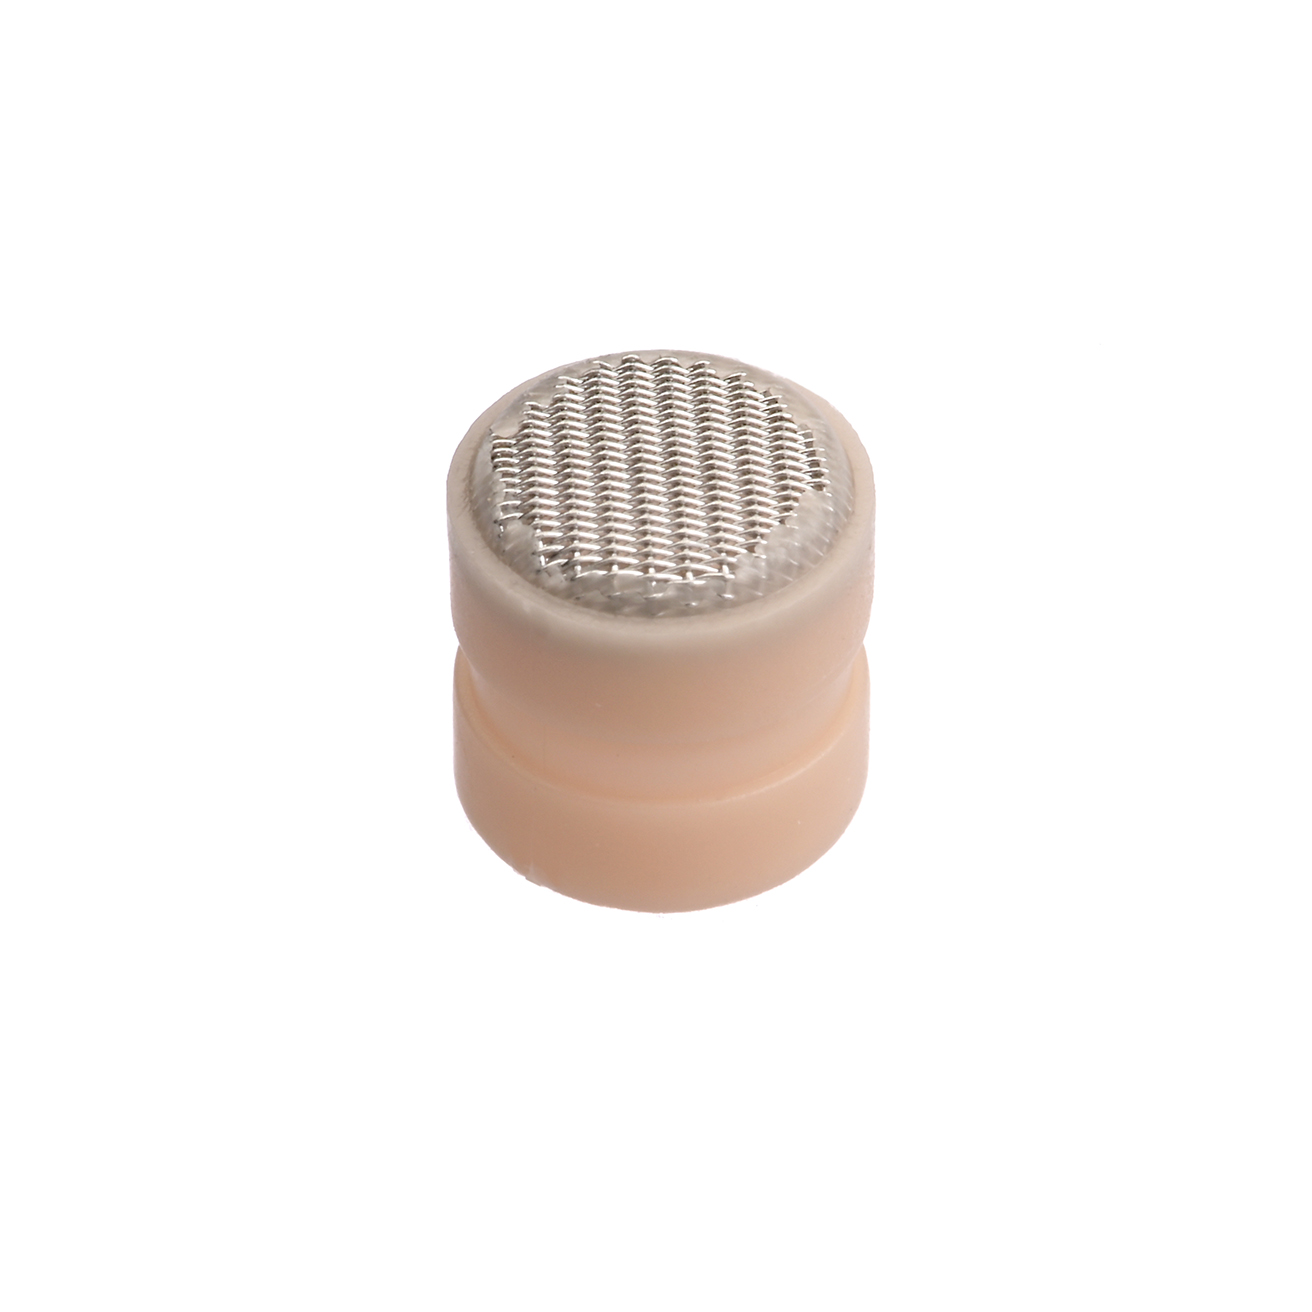 Cap RD 14,8x6,5, beige with